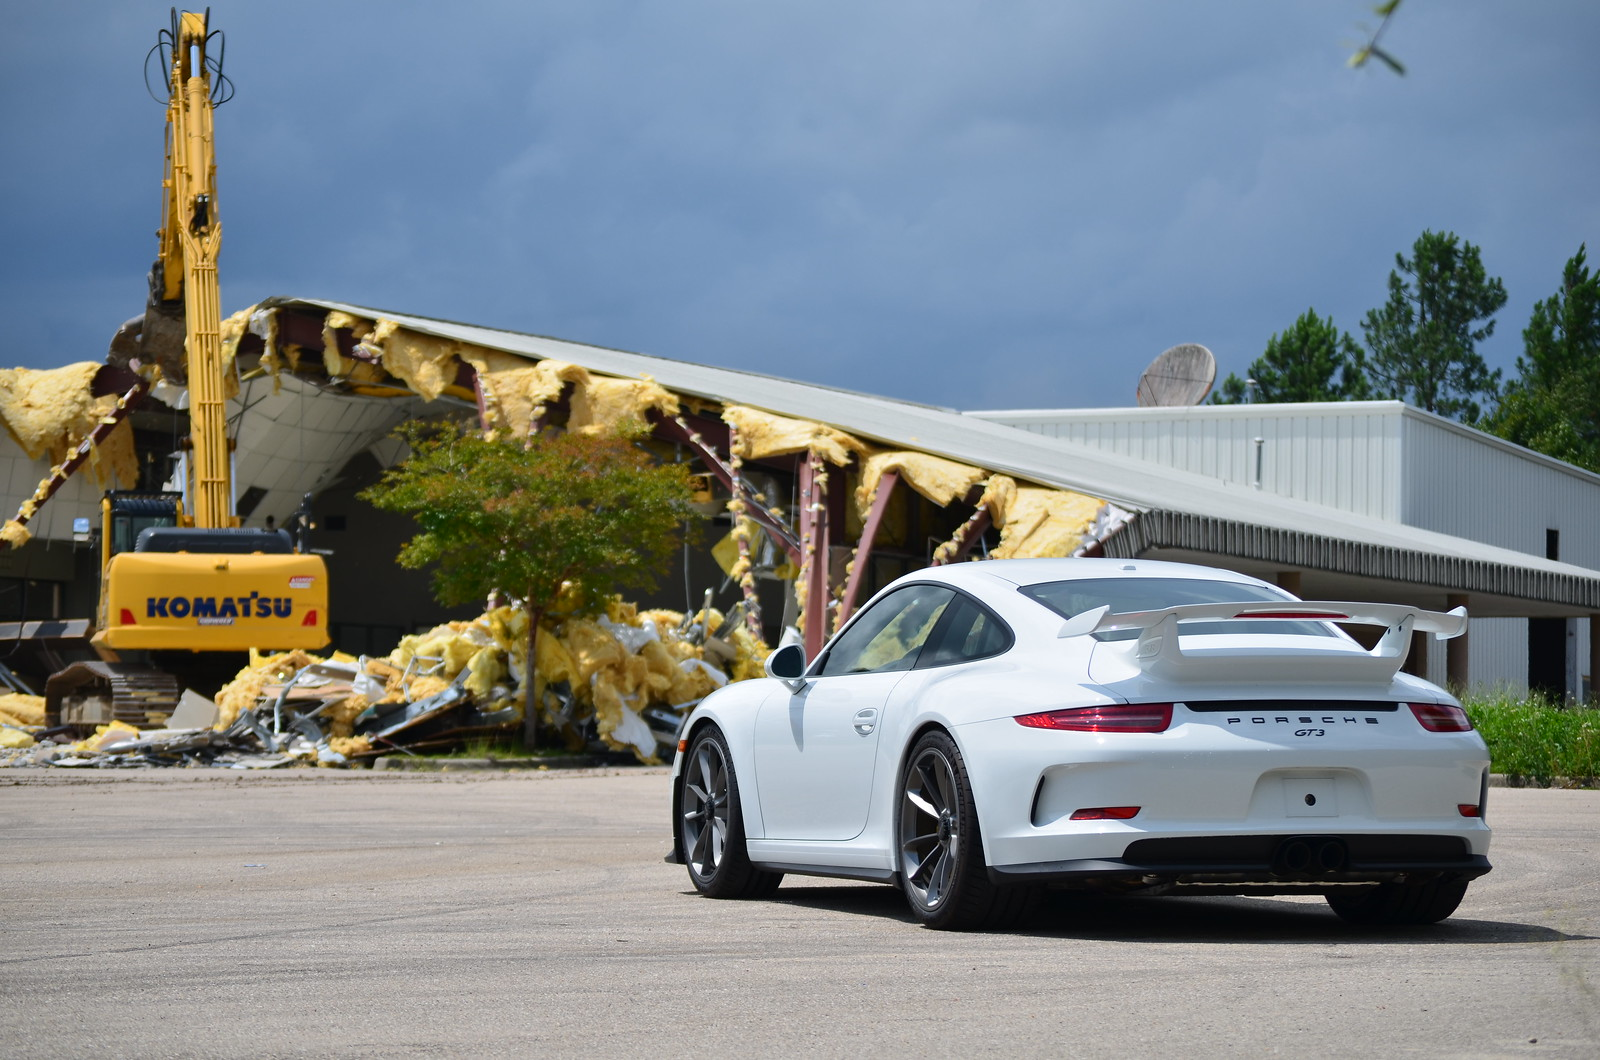 New 2014 911 Gt3 From Porsche Dealer New Engine Capital